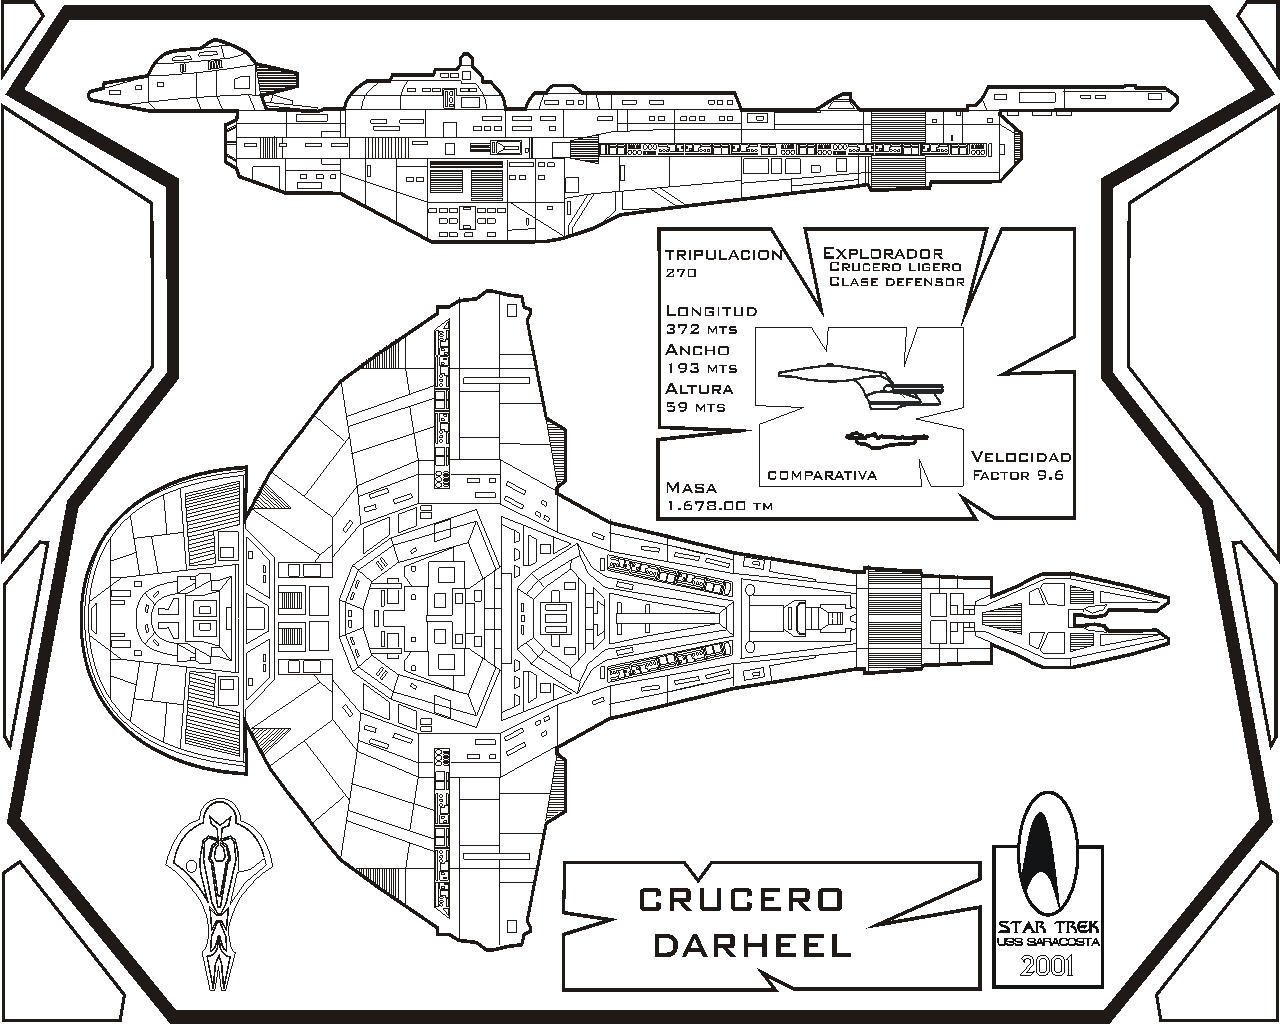 star trek blueprints u s s enterprise ncc 1701a deck plans